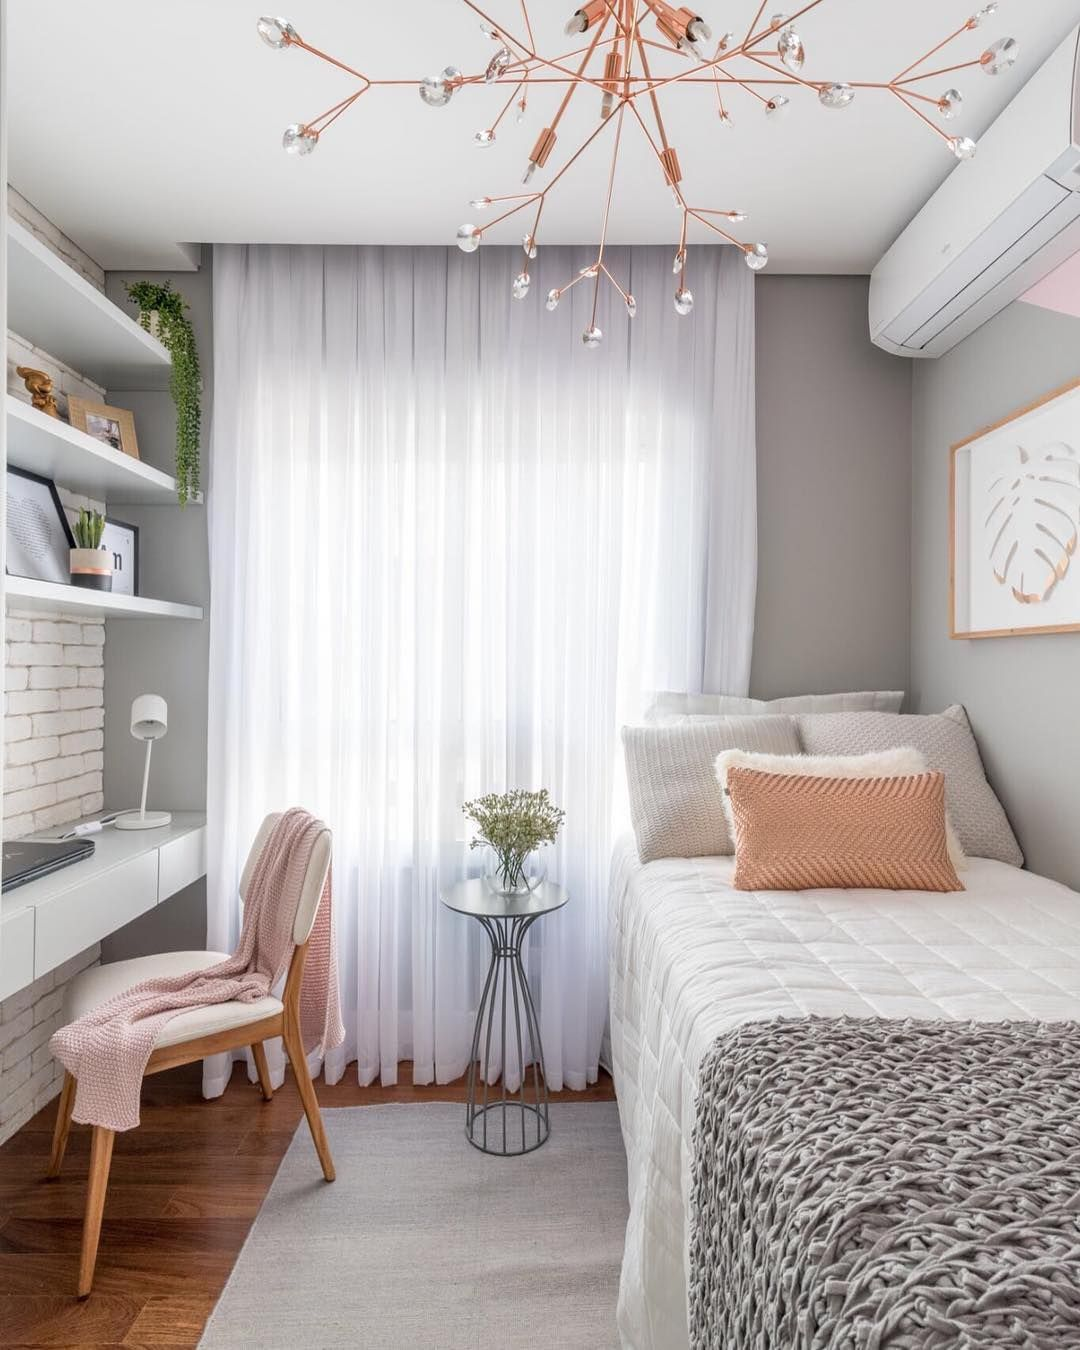 small bedroom, wooden floor, grey wall, white floating table with drawers, white floating shelves, grey wall, white exposed wall, side table, interesting lighting fixture